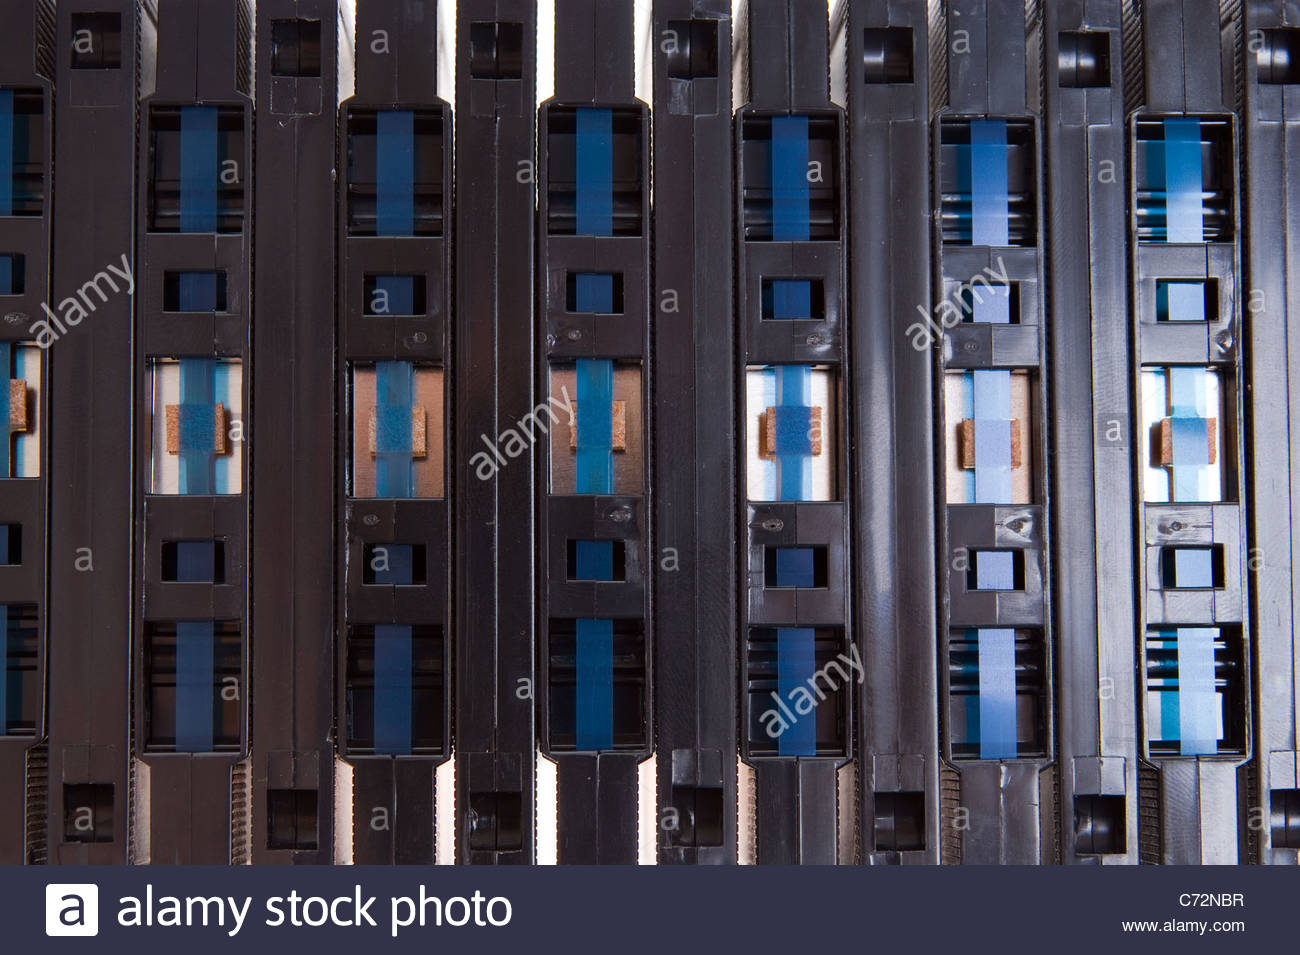 compact cassette. Stack of music tapes - Stock Image